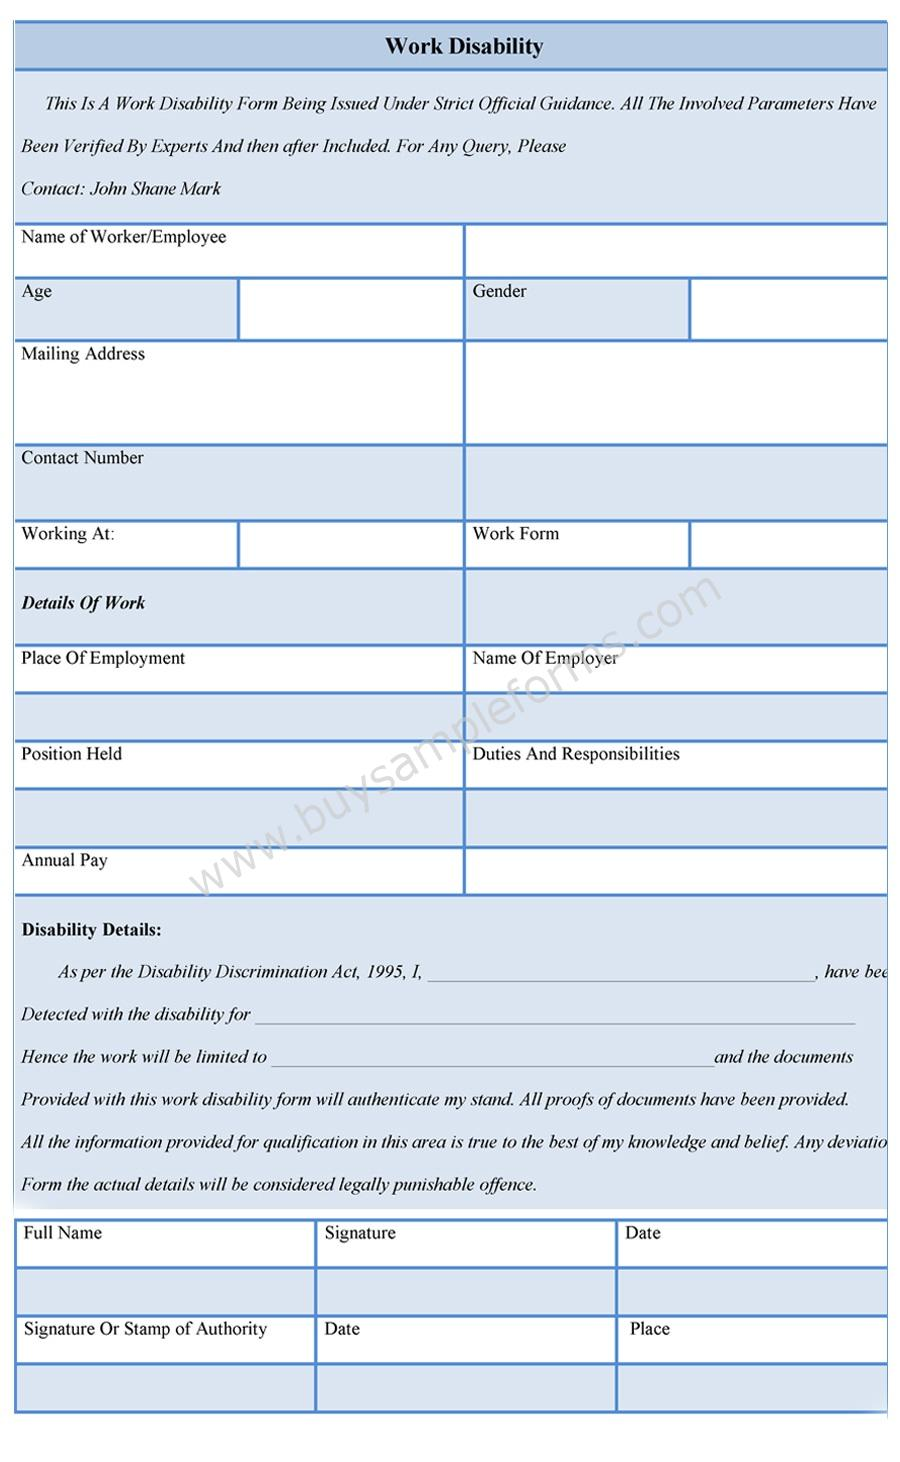 work disability form template